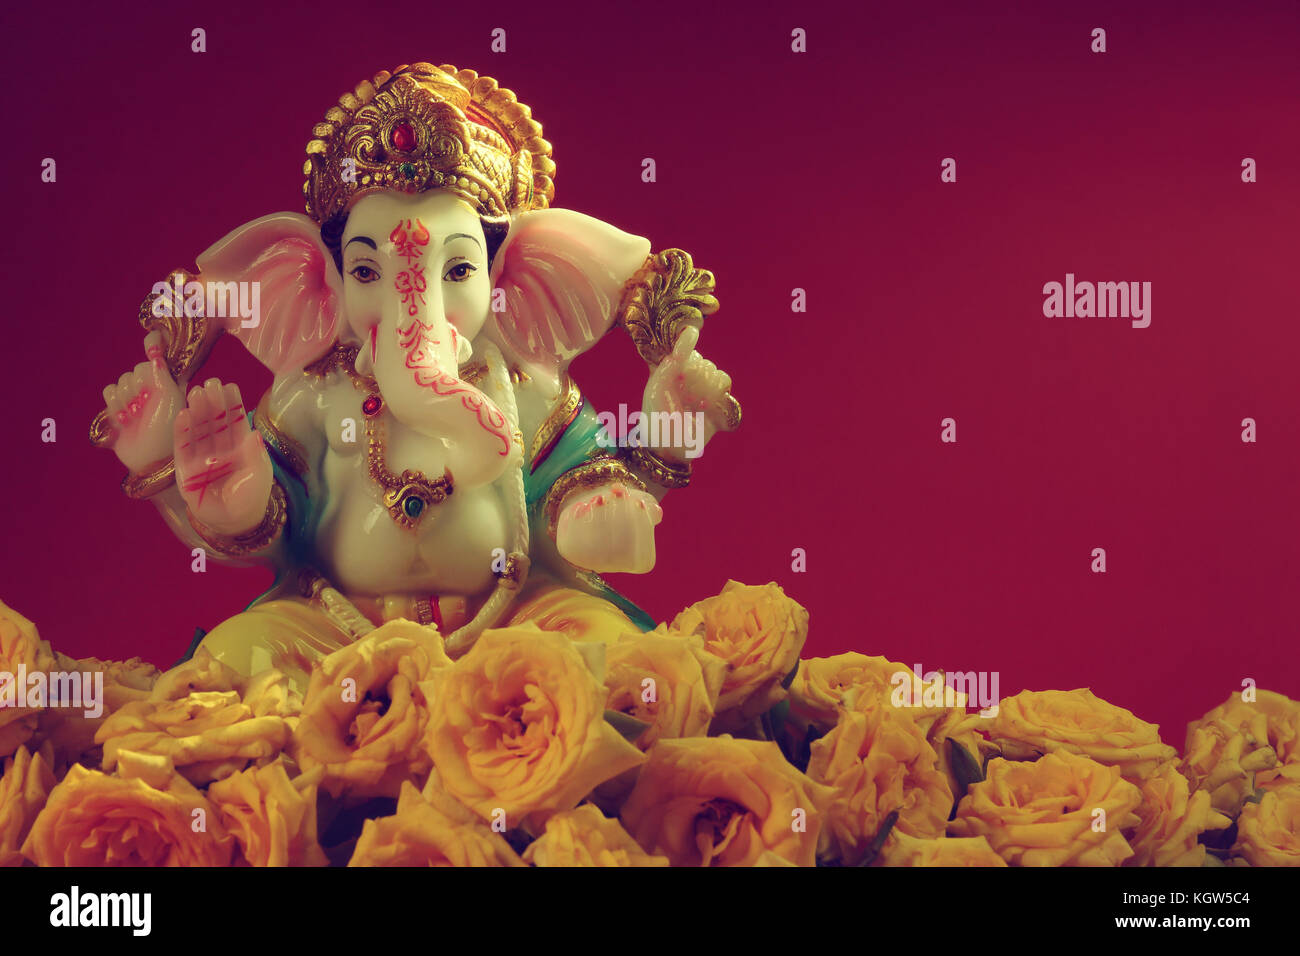 Ganpati Stock Photos Ganpati Stock Images Alamy